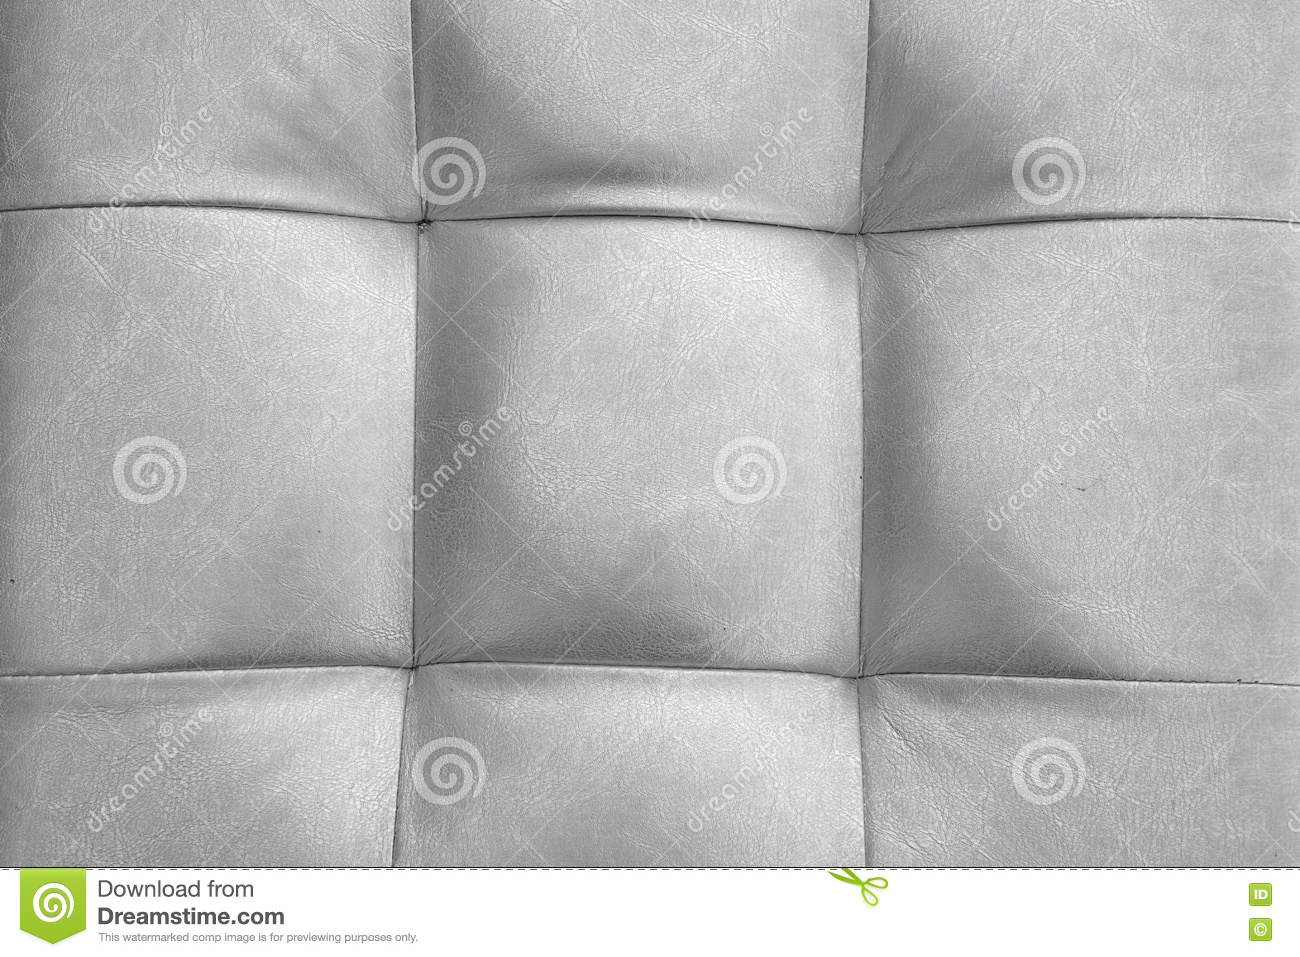 Leather cushion texture - Silver Color Natural Leather Cushion Or Pillow Or Puff Backgroun Stock Photo